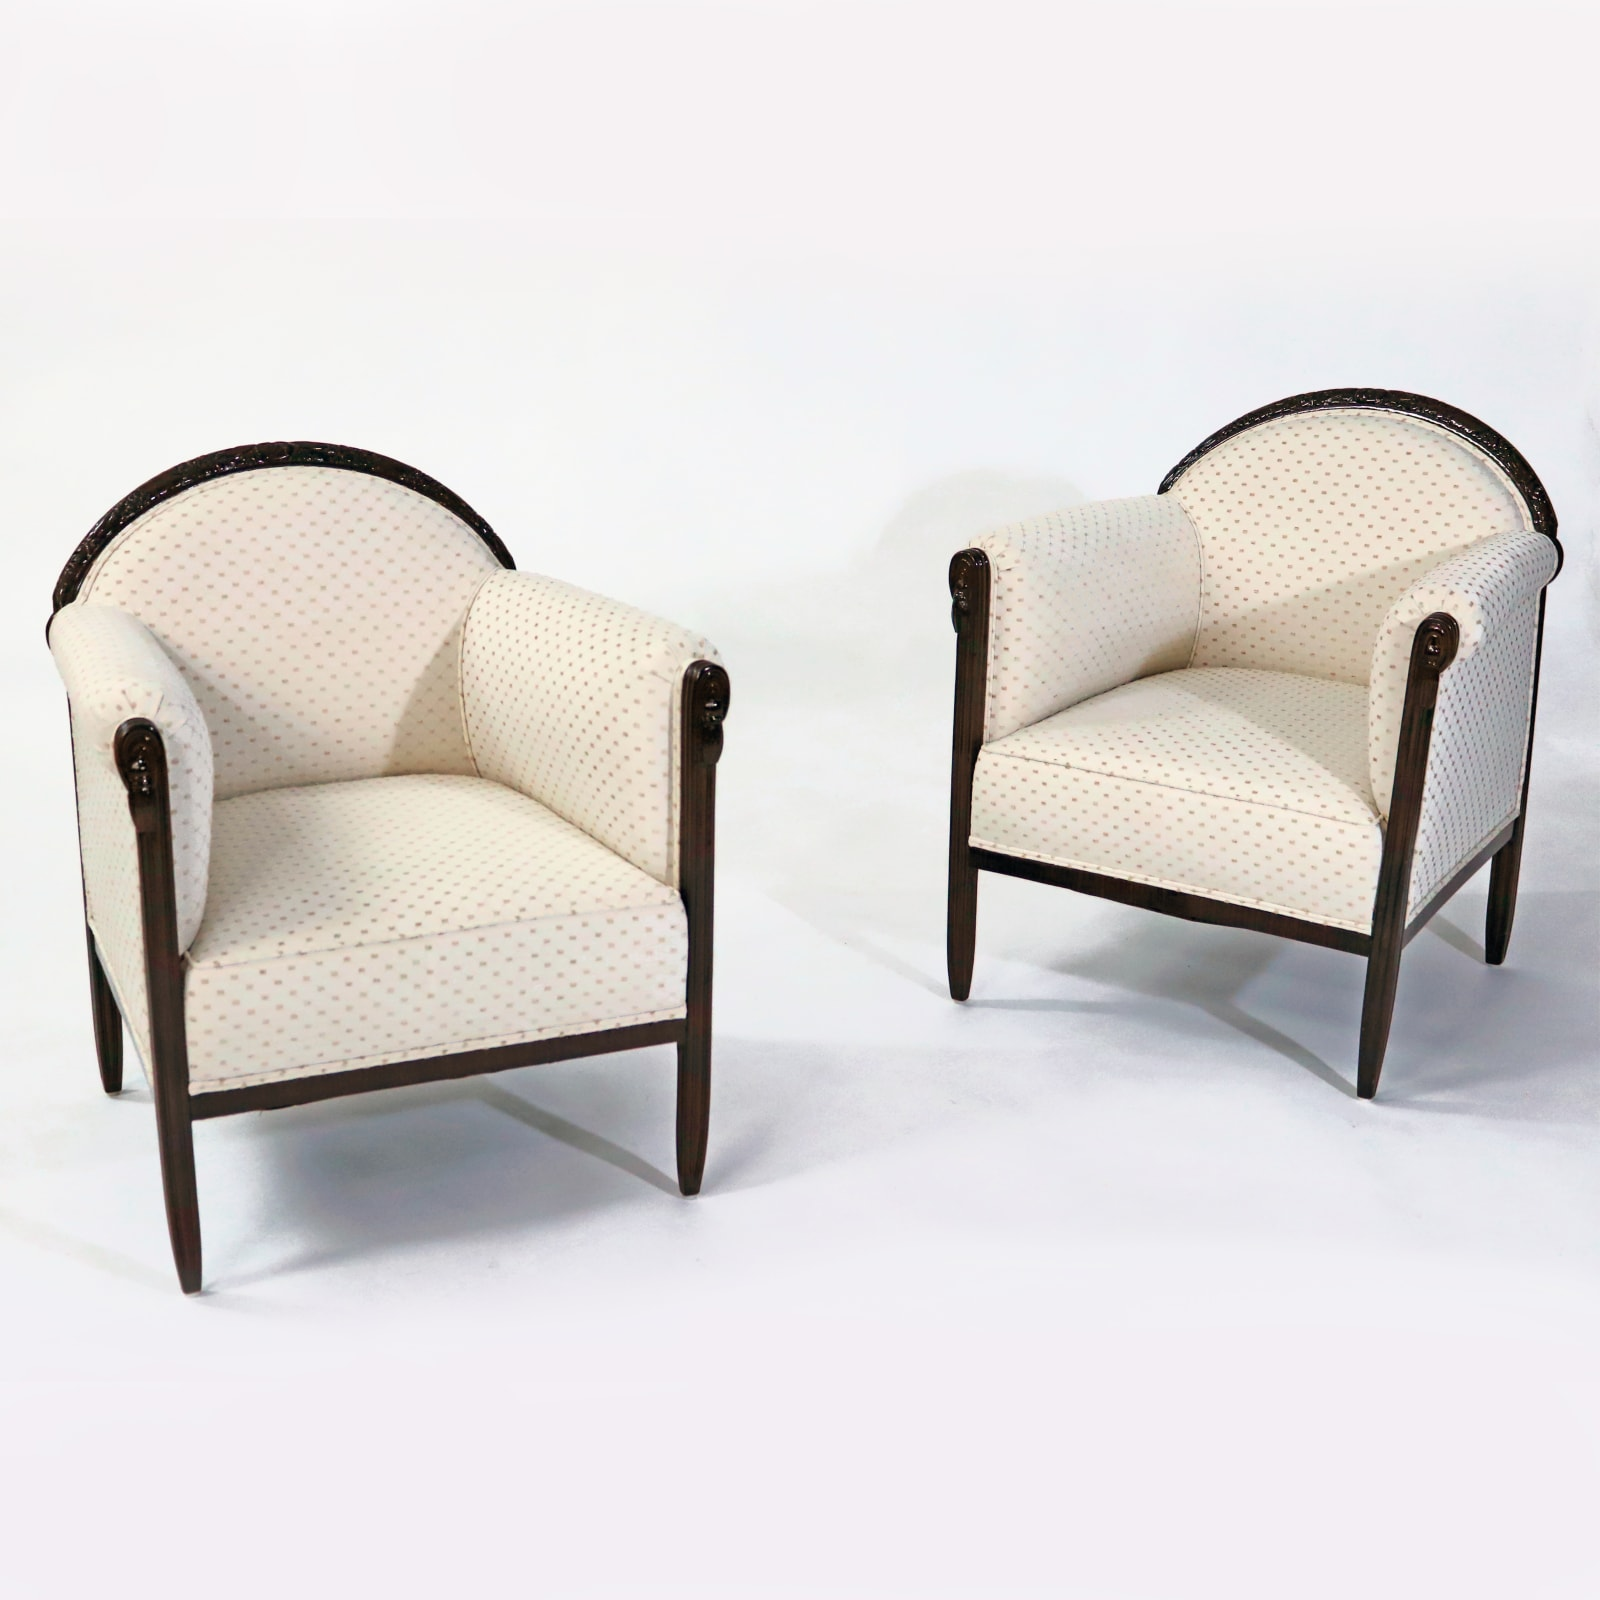 Art Deco Chairs, France, 1930